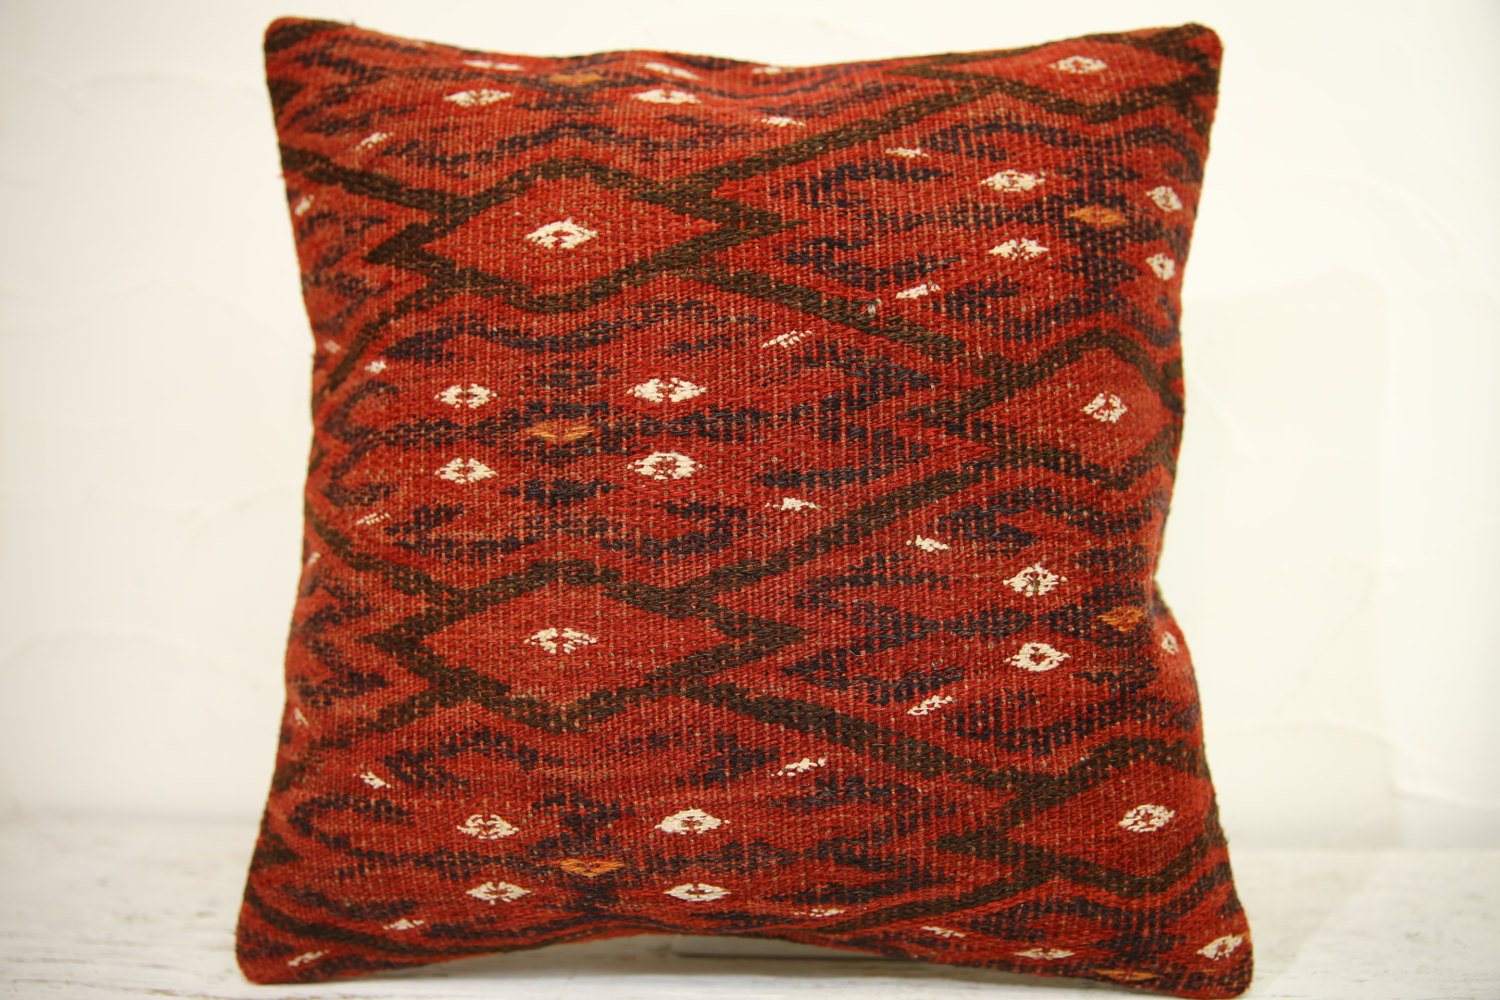 Kilim Pillows | 16x16 | Turkish pillows | 1268 | Accent Pillow,Decorative Pillow